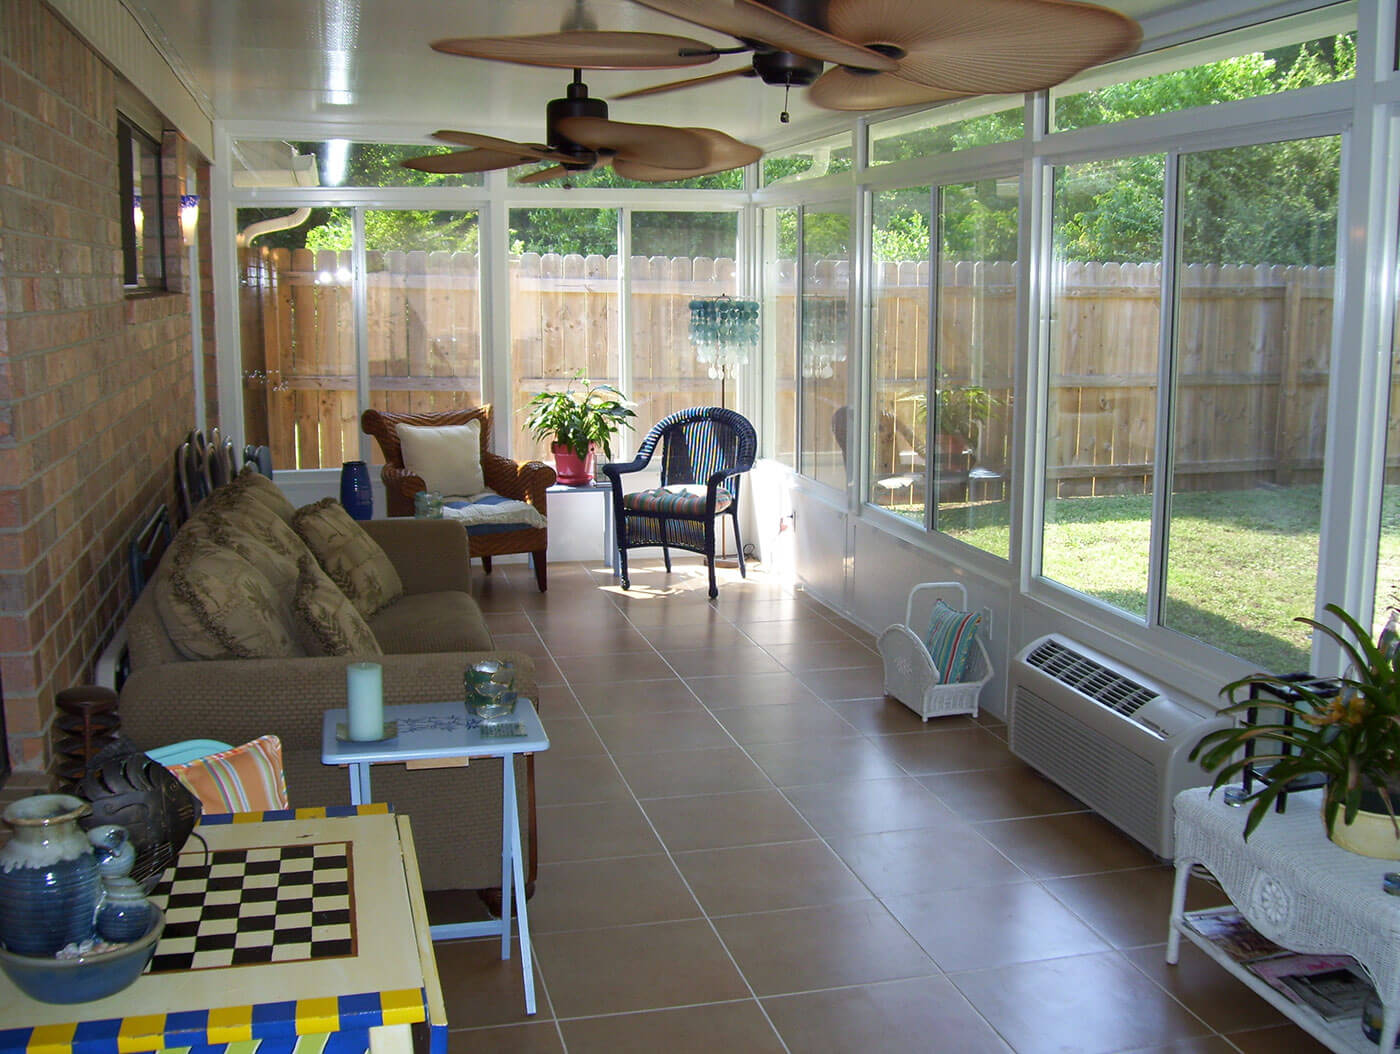 Sunroom Gallery Sunrooms Screen Rooms Pensacola Fl